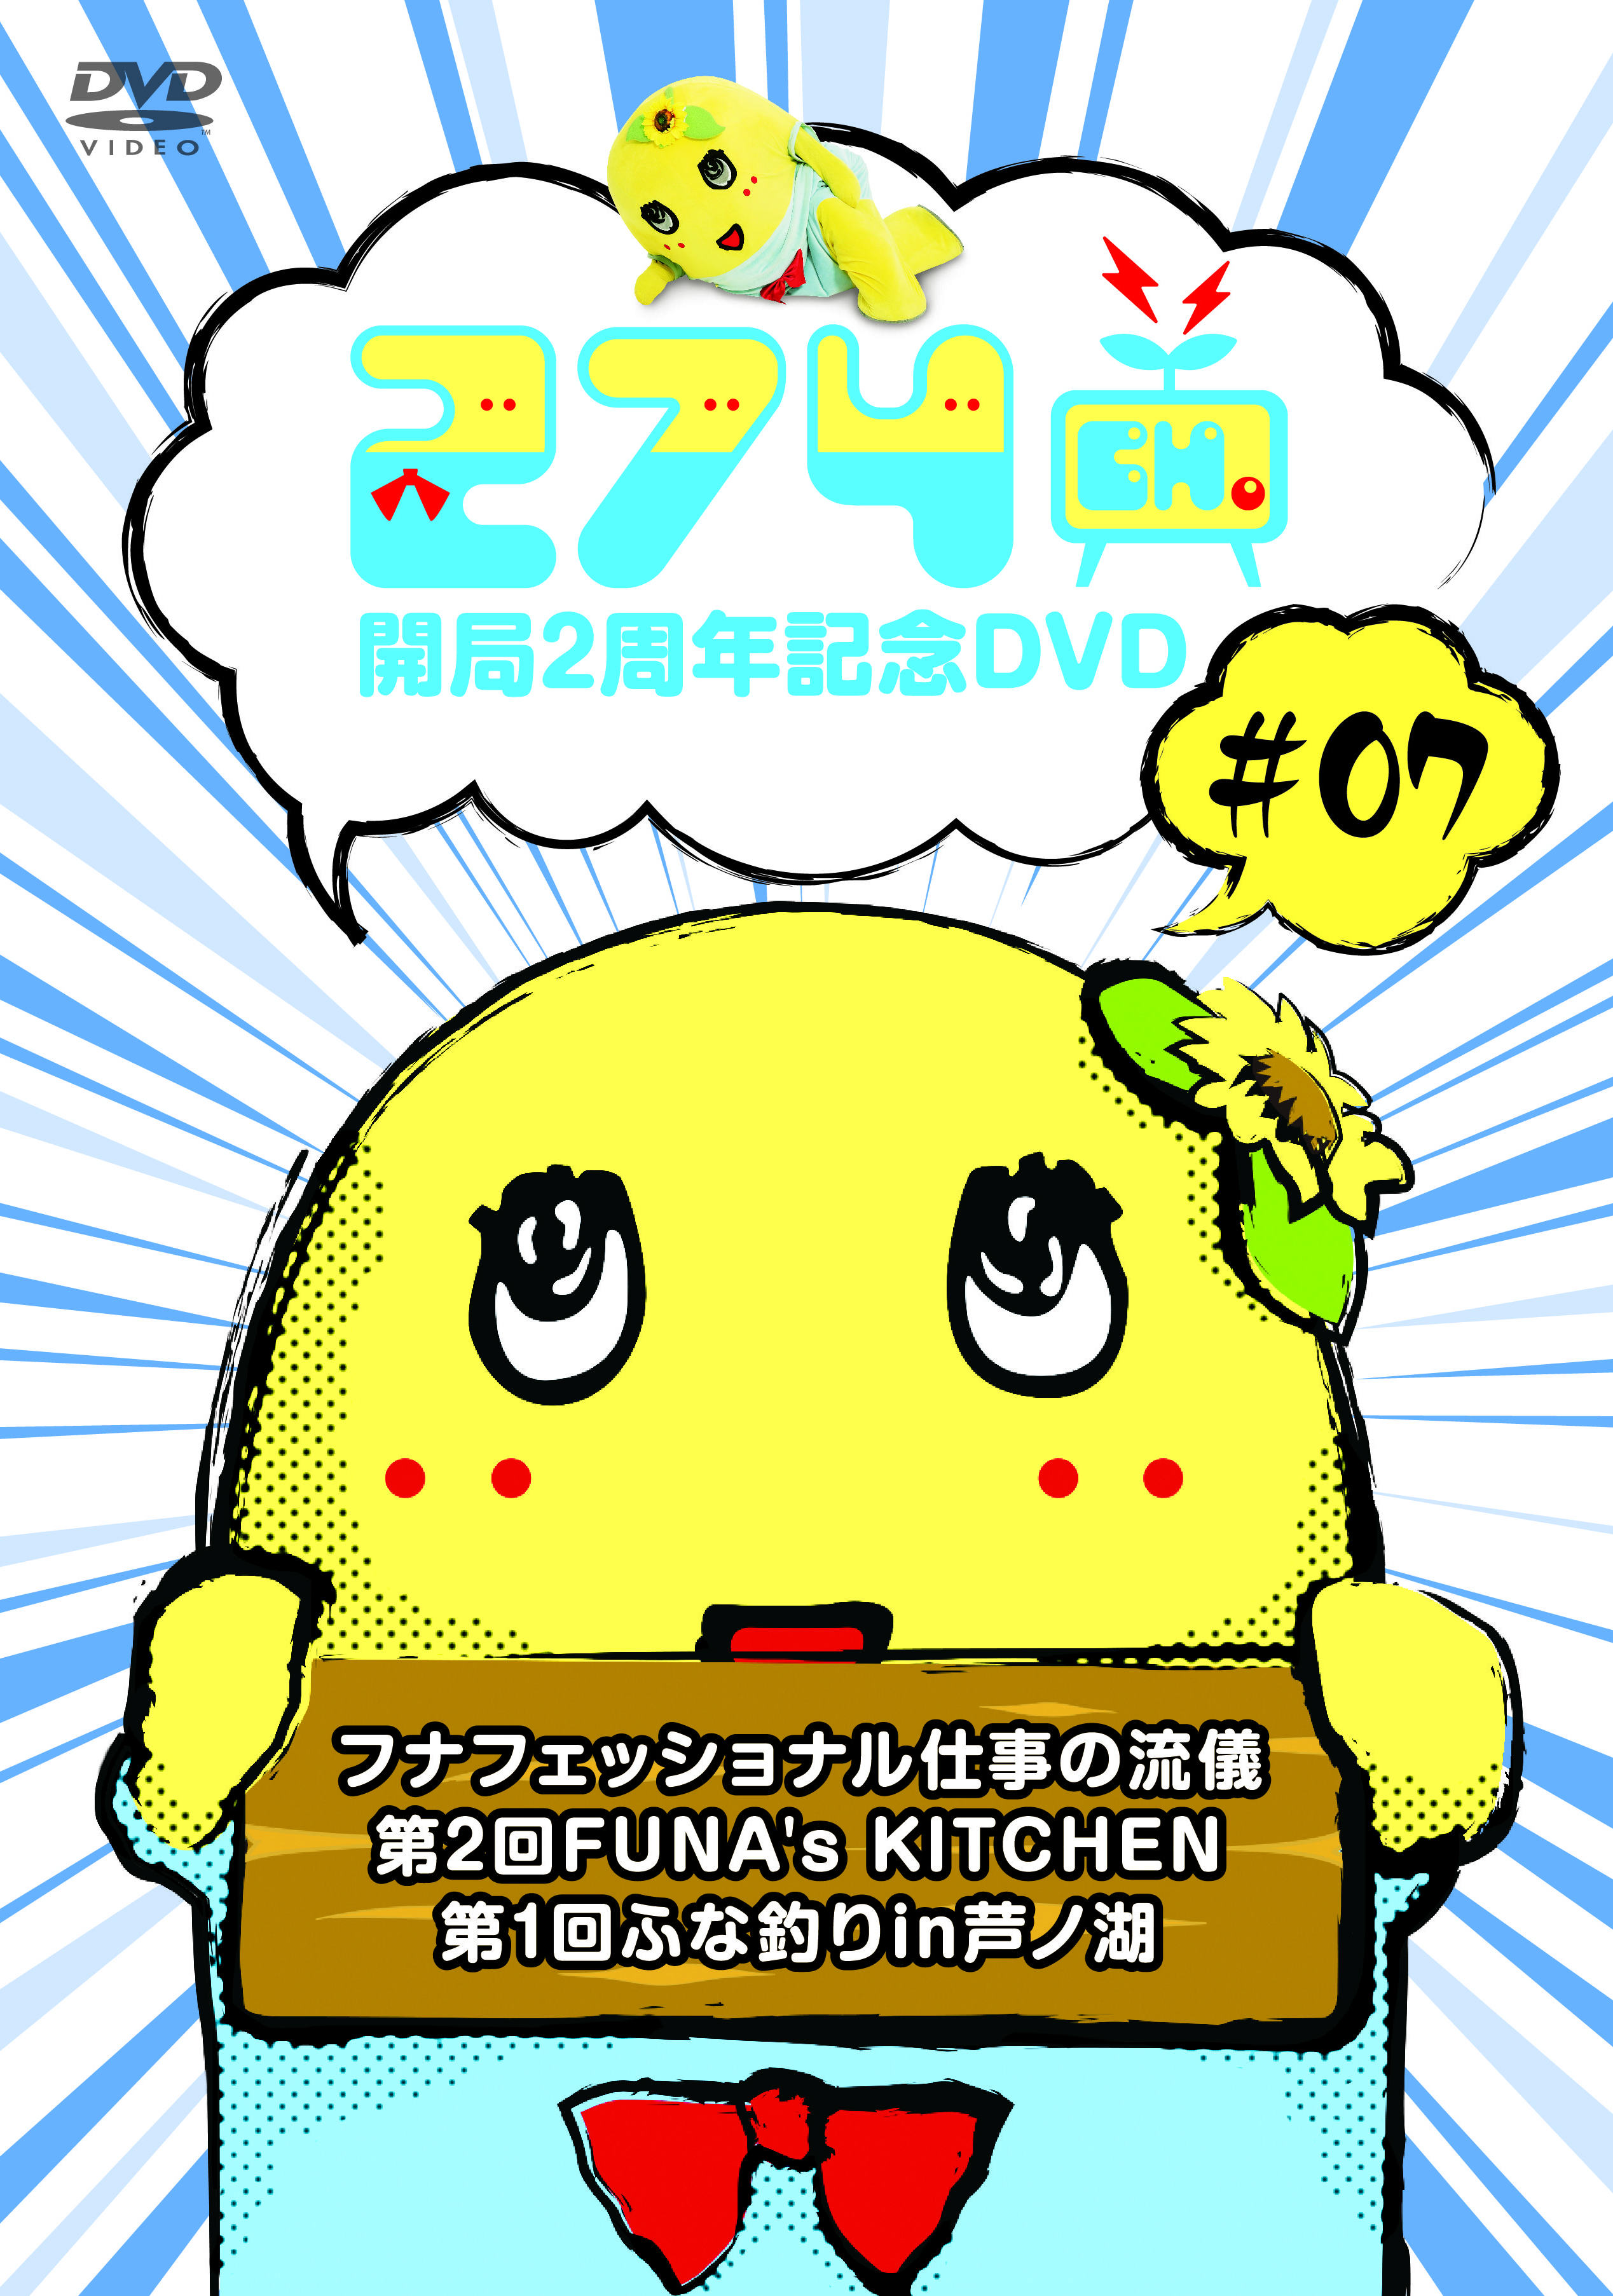 274ch. 開局2周年記念DVD#7「フナフェッショナル 仕事の流儀/第2回FUNA's KITCHEN/第1回ふな釣り in芦ノ湖」